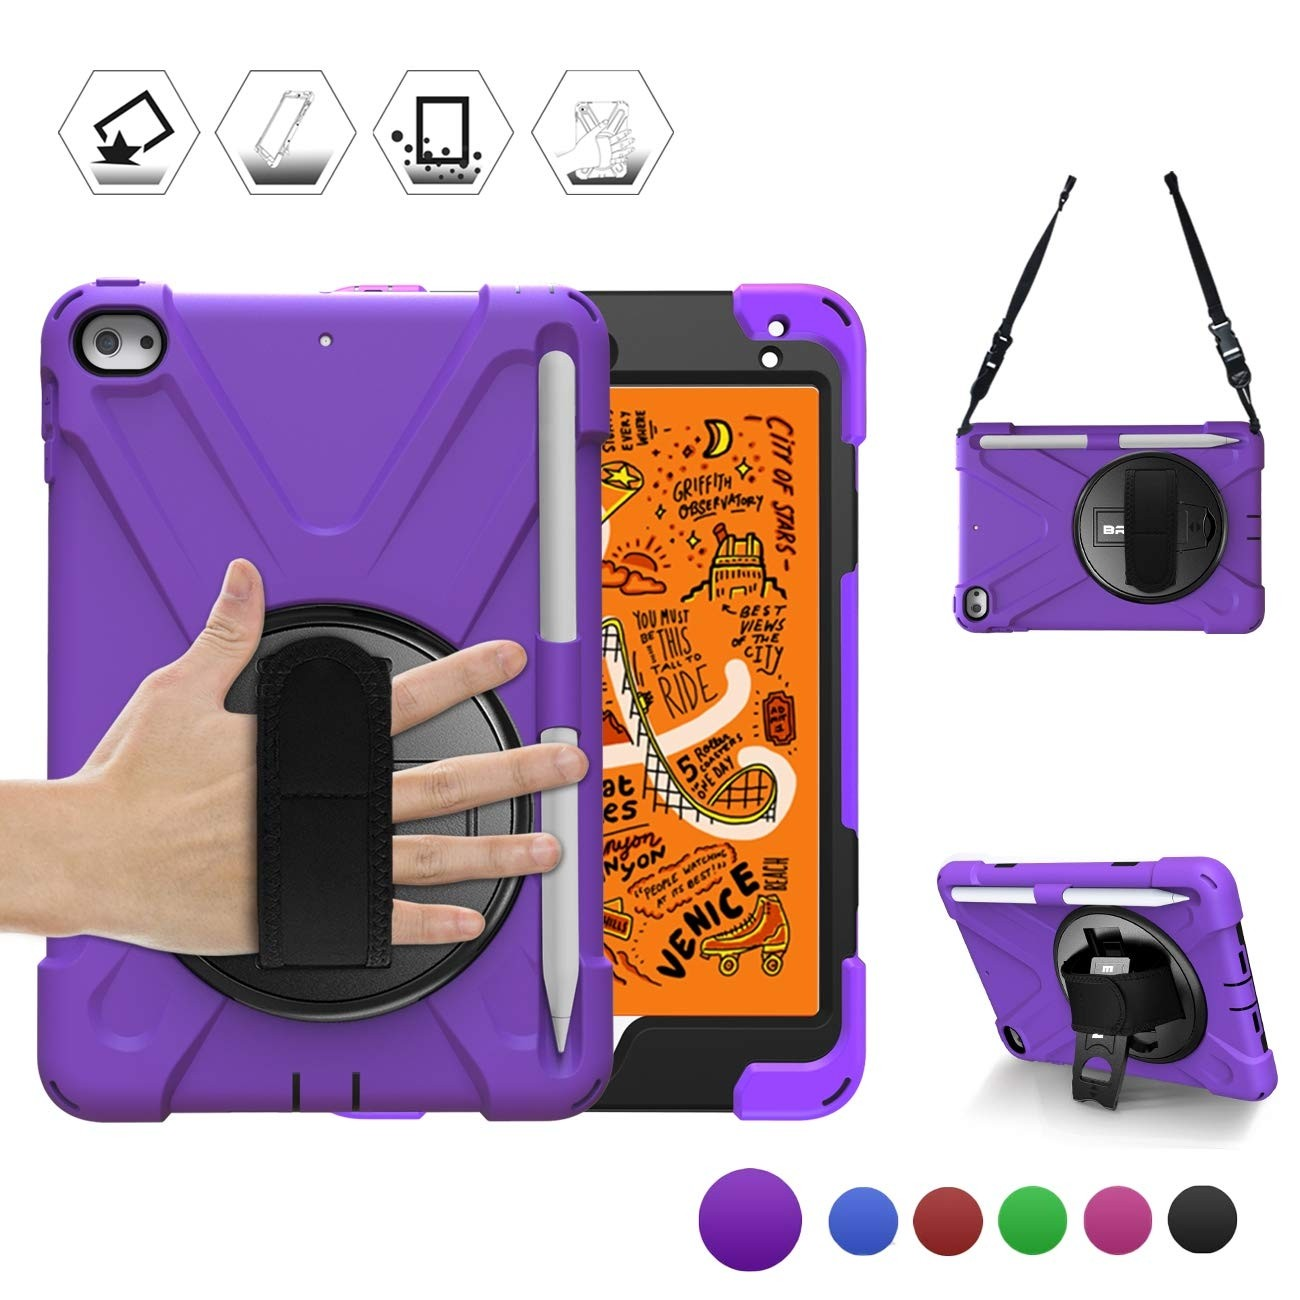 Breacn iPad Mini 5 Case,iPad Mini 4 Case, Heavy Duty Shockproof Protective Rugged Case with Pencil Holder, Hand Strap, Kickstand, Shoulder Strap for iPad Mini 5th/4th Generation 7.9 Inch for Kids - Purple, B07T96KZRN